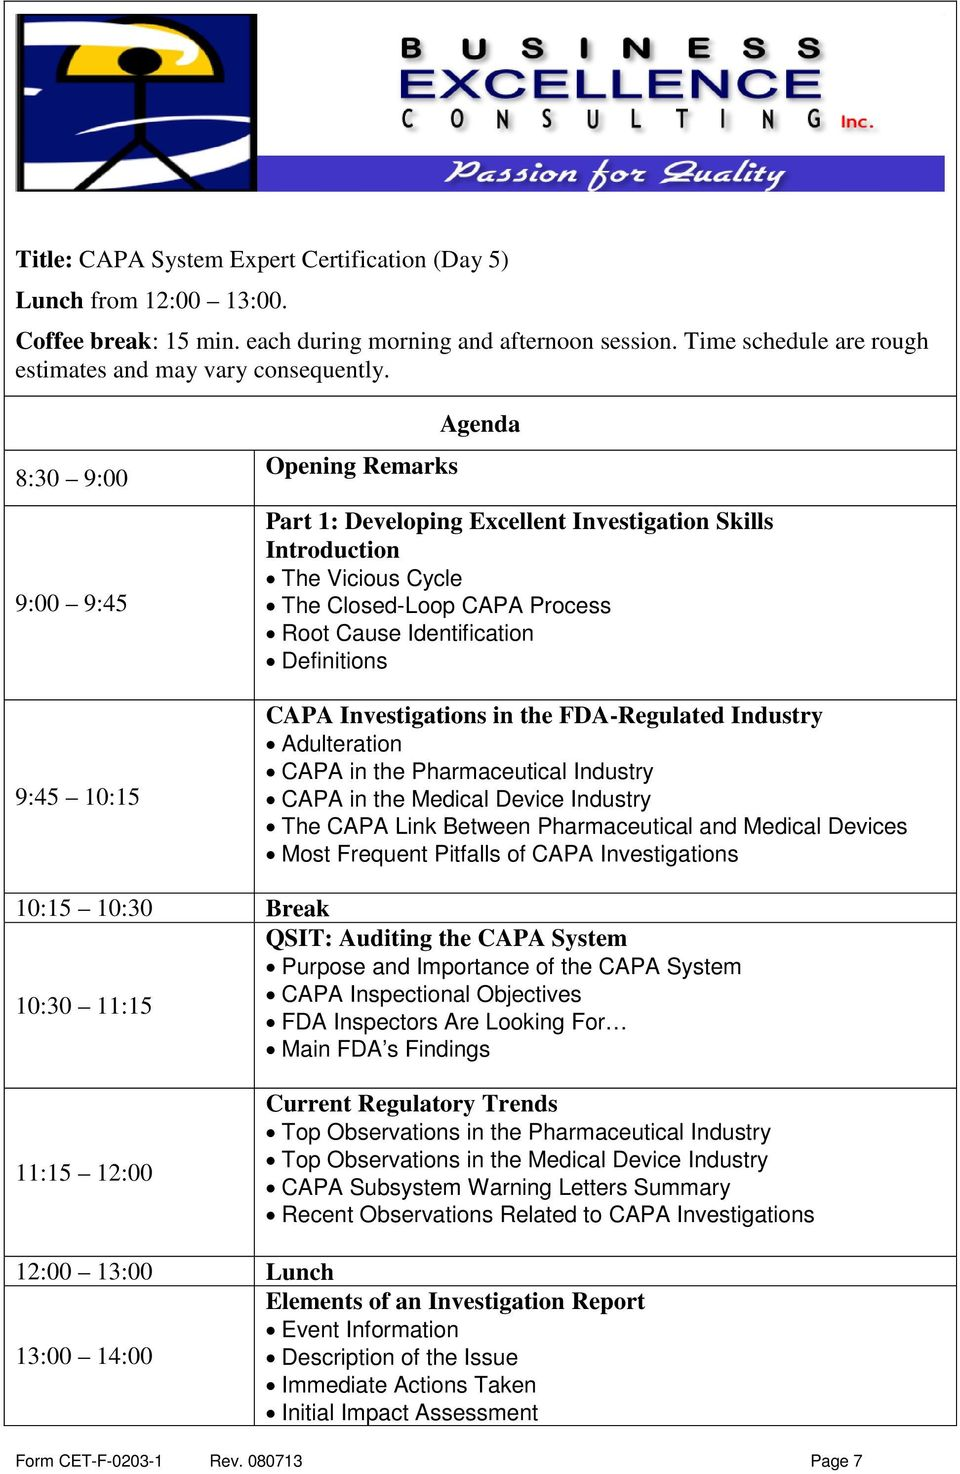 Between Pharmaceutical and Medical Devices Most Frequent Pitfalls of CAPA Investigations QSIT: Auditing the CAPA System Purpose and Importance of the CAPA System CAPA Inspectional Objectives 10:30